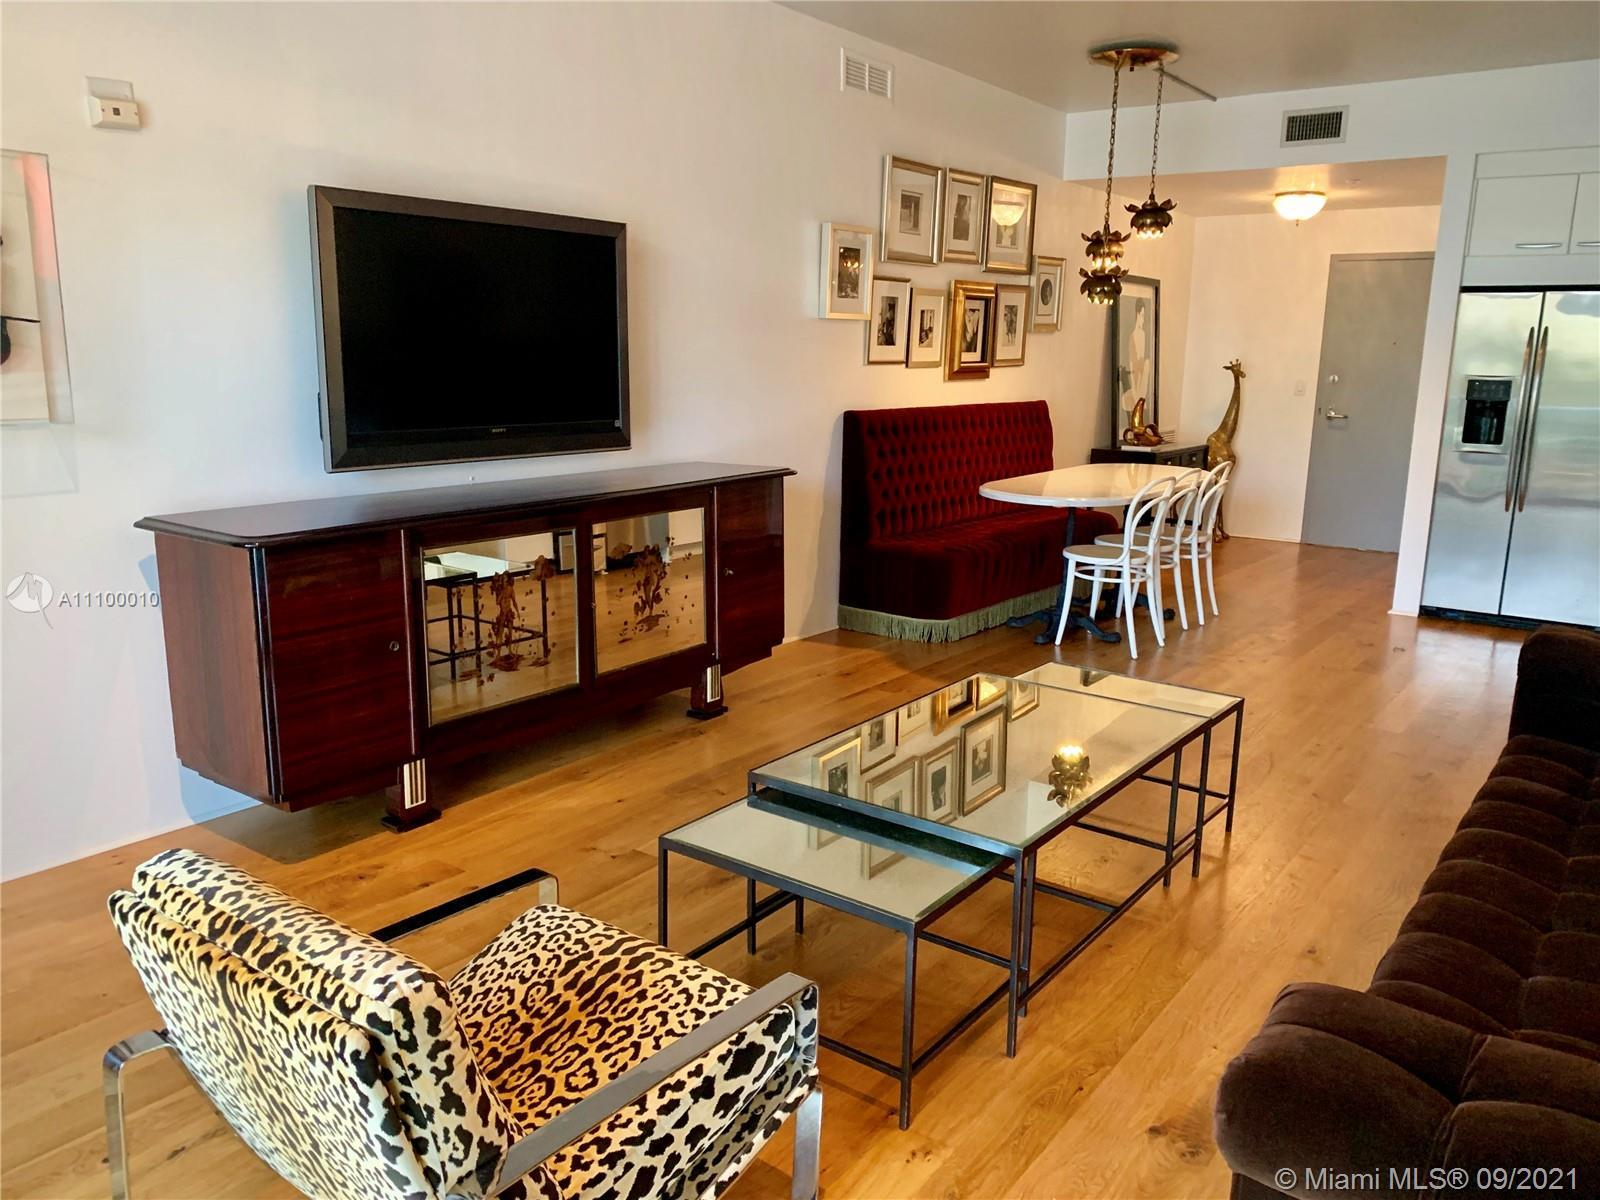 Designer furnished 1 br/1.5 bath with large balcony in South Beach's iconic Zyscovich-designed Merid